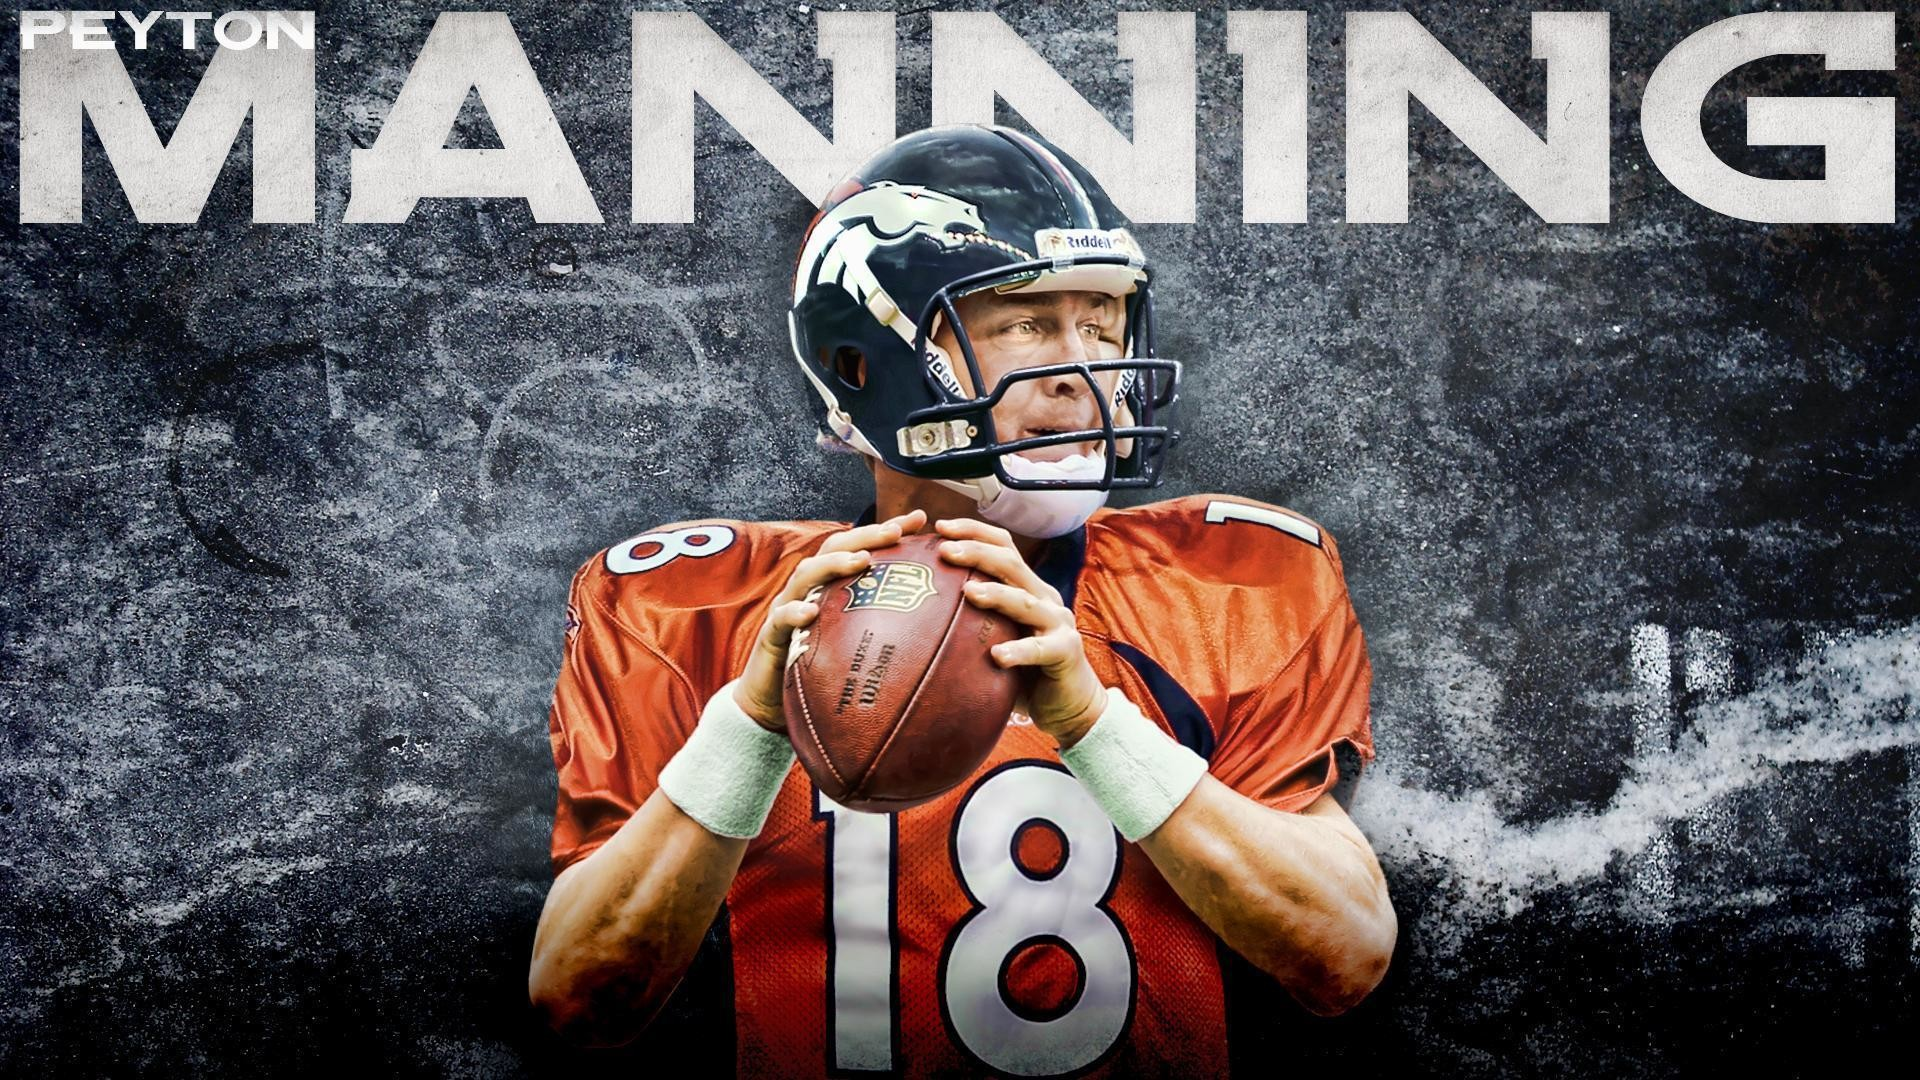 Cool nfl wallpapers 74 images - Cool broncos wallpaper ...